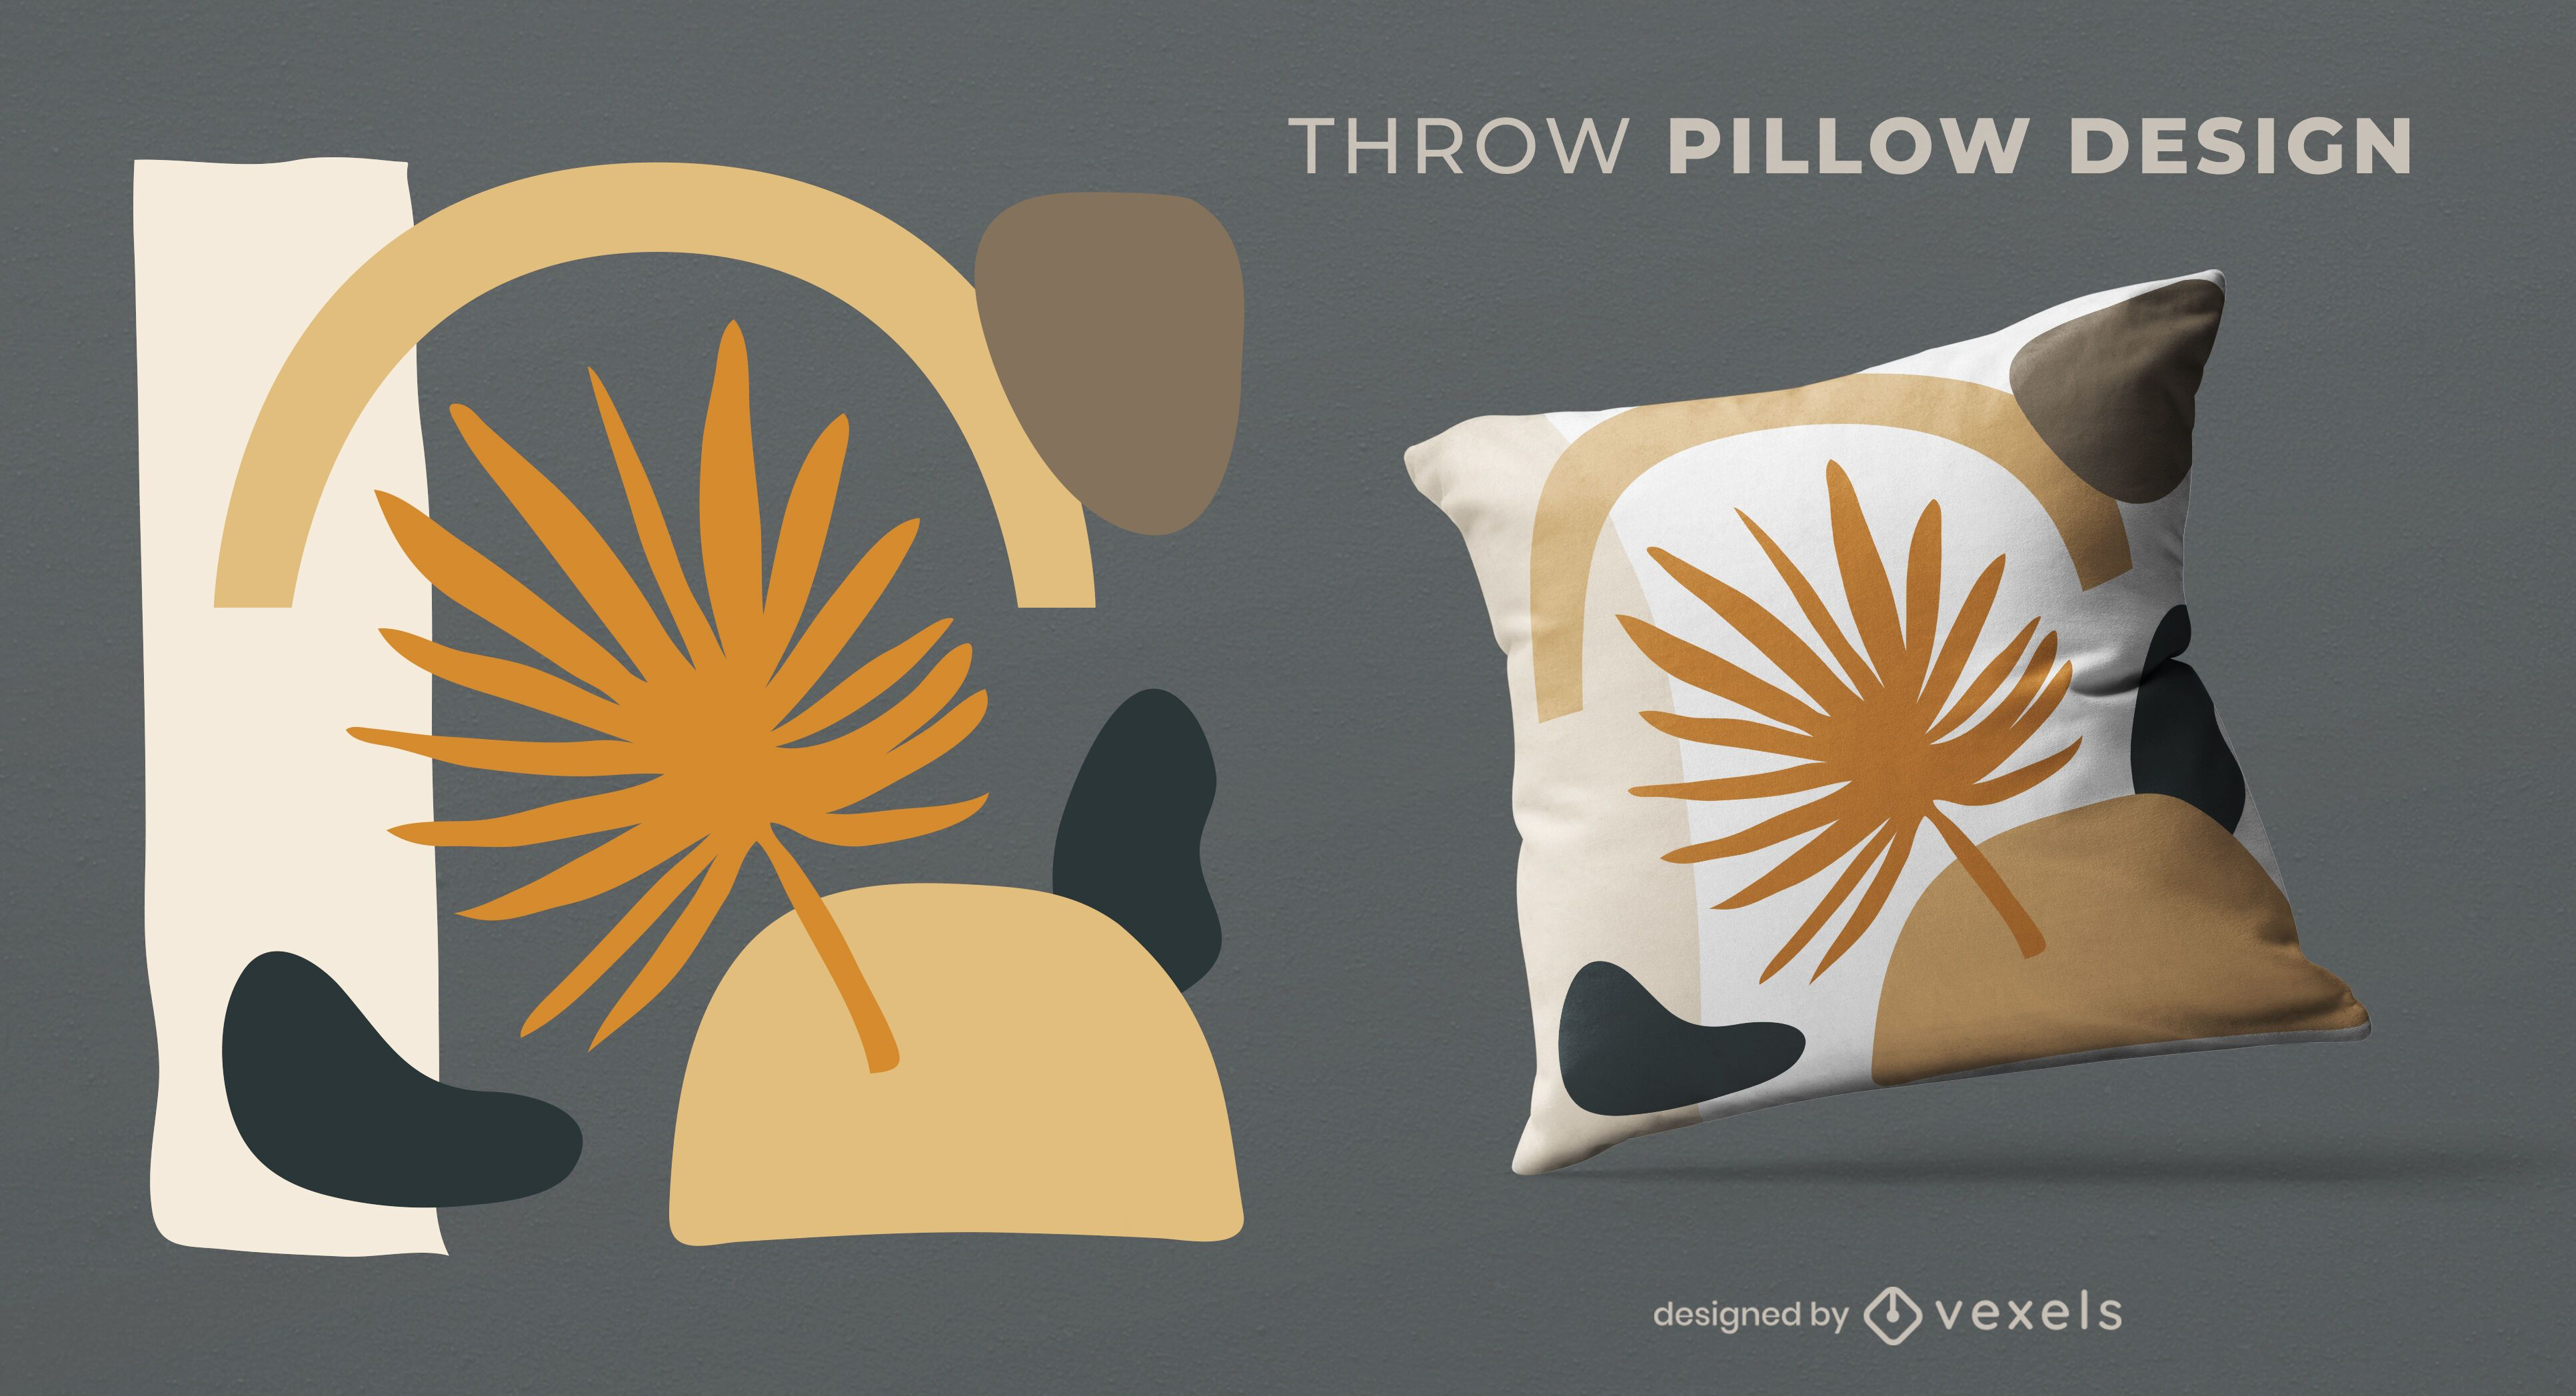 Abstract leaf shapes throw pillow design